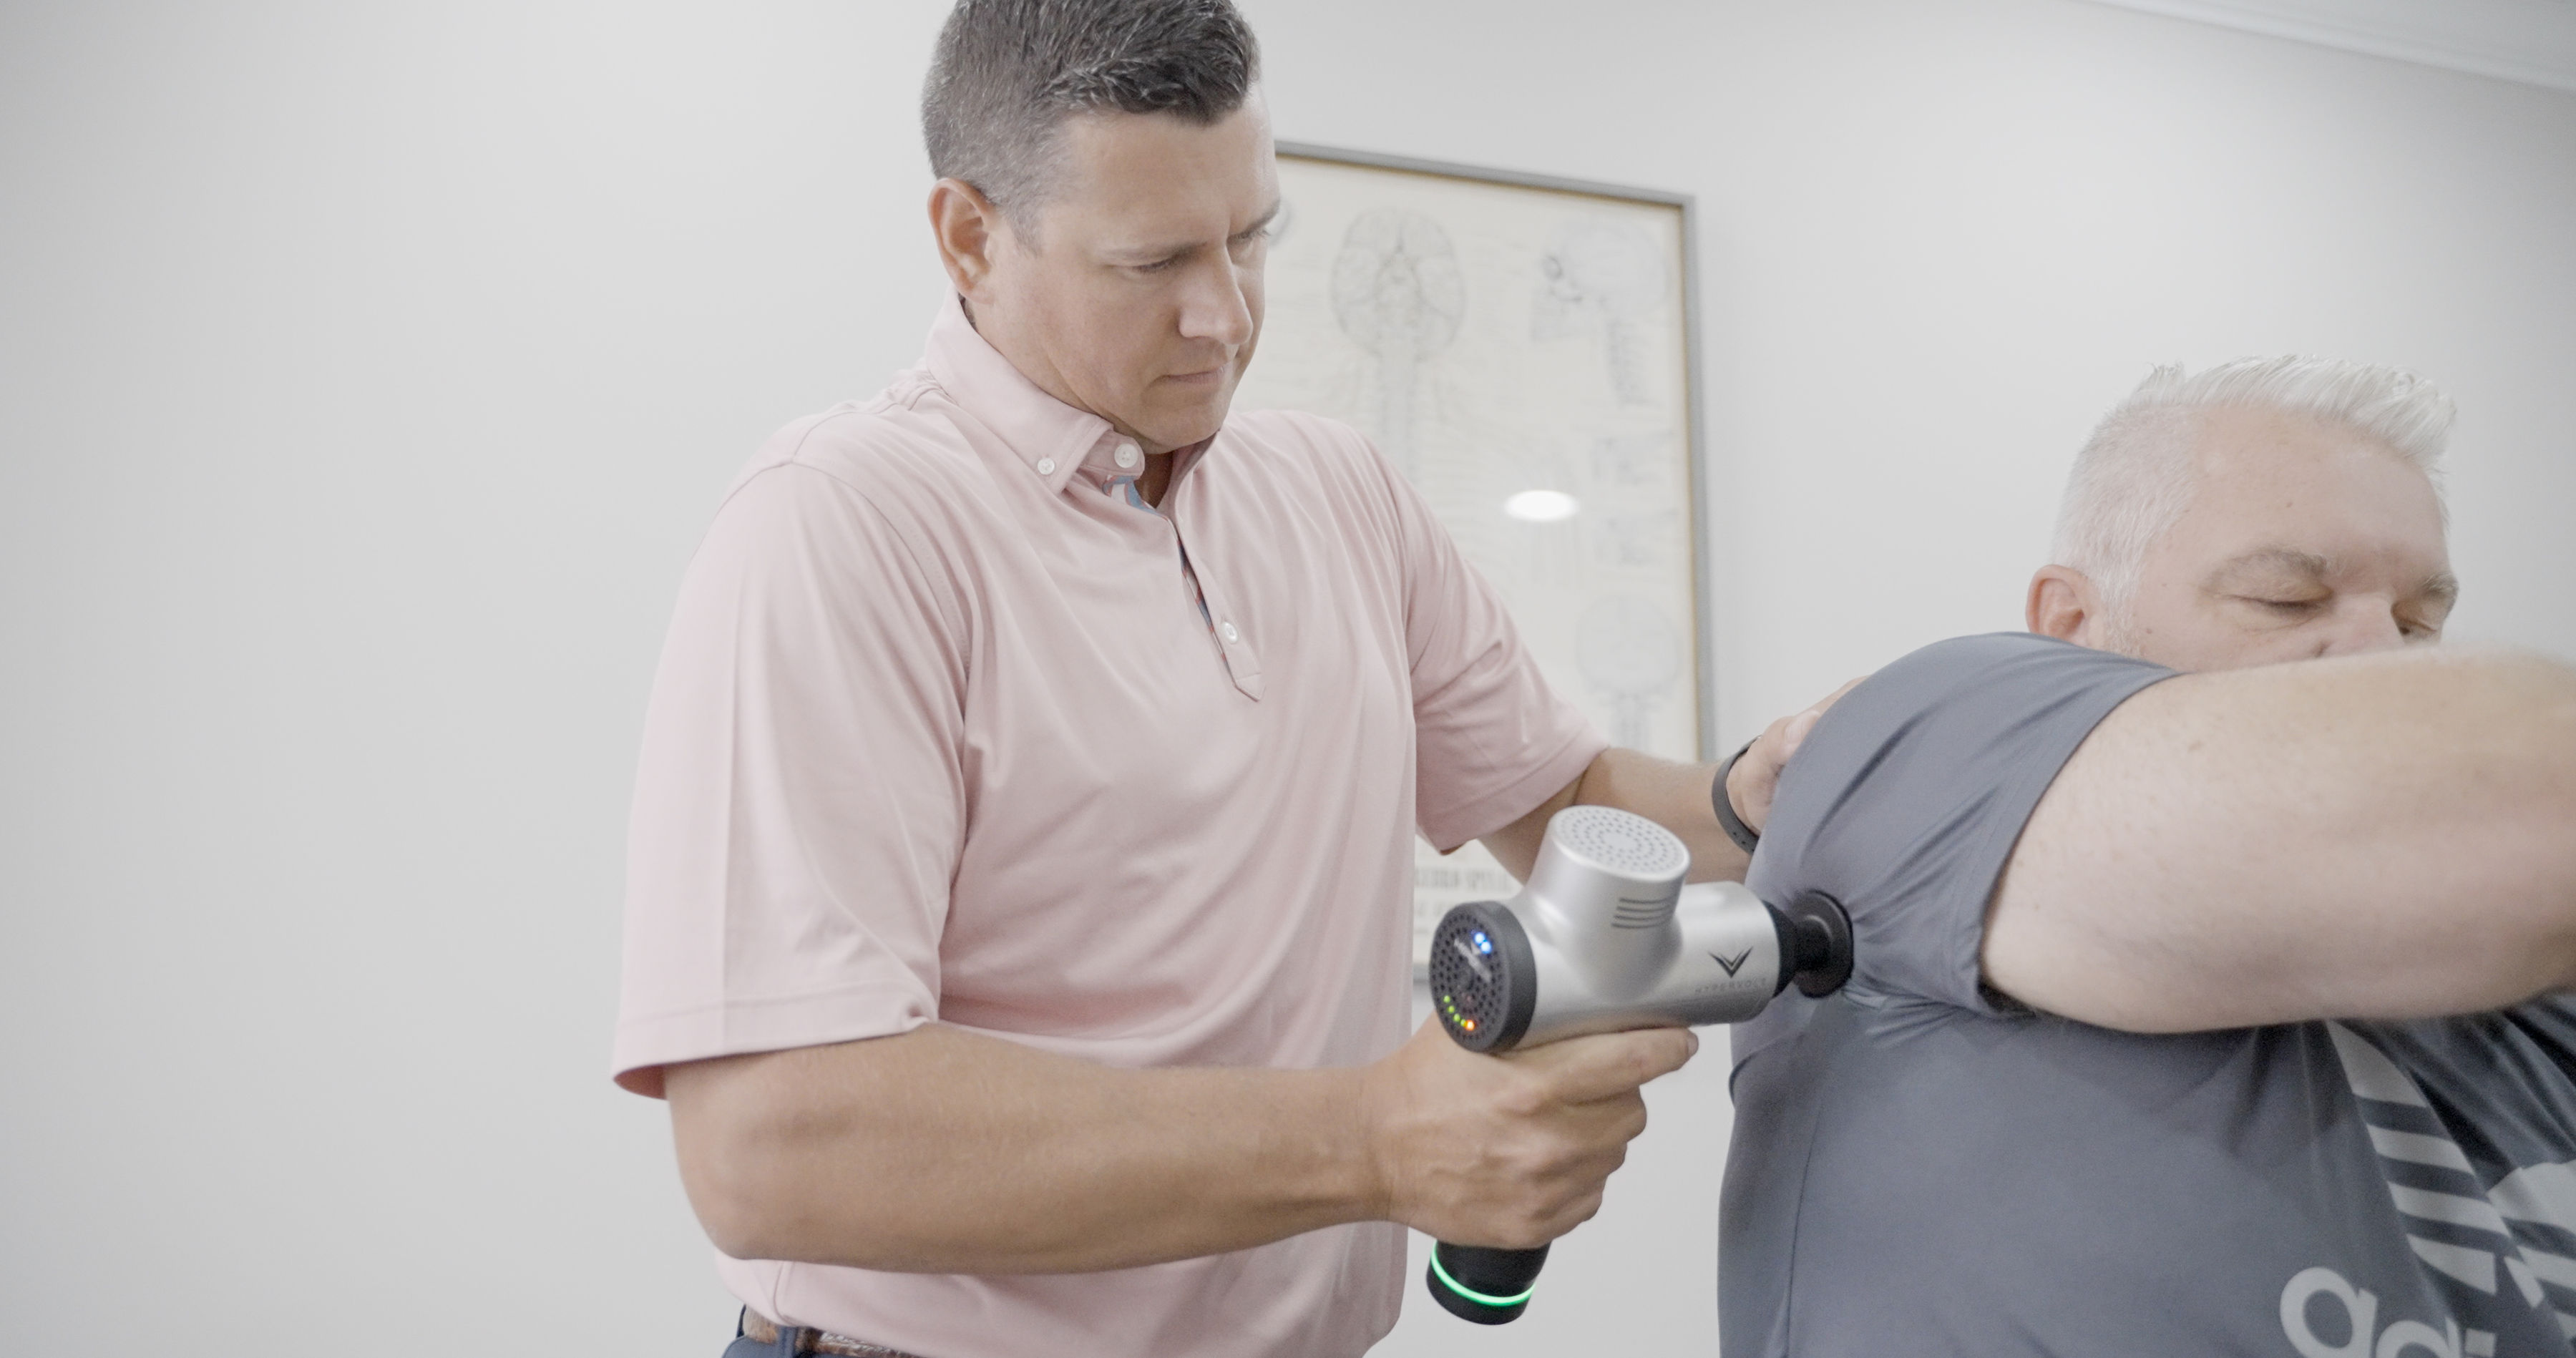 Dr. Paul using hammer-like device to patient